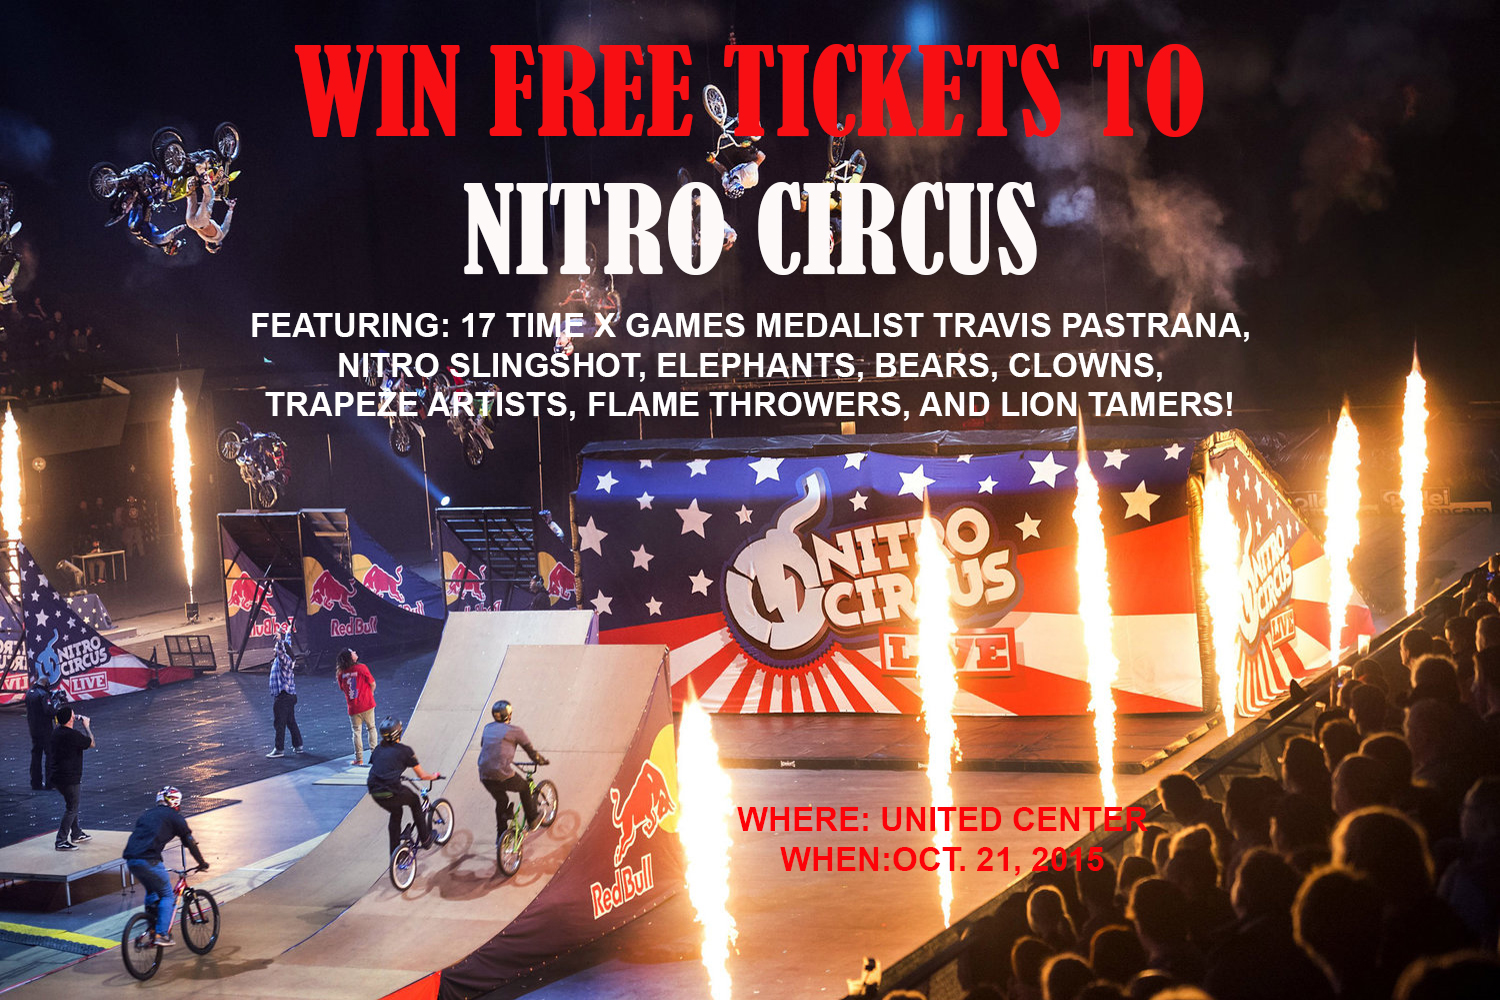 Athletes+perform+during+the+Nitro+Circus+Live+show+in+Amsterdam%2C+The+Netherlands+on+December+3rd%2C+2013.++%2F%2F+Jarno+Schurgers%2FRed+Bull+Content+Pool+%2F%2F+VIN%3A+SI201312050558+%2F%2F+Usage+for+editorial+use+only+%2F%2F+Please+go+to+www.redbullcontentpool.com+for+further+informations.+%2F%2F